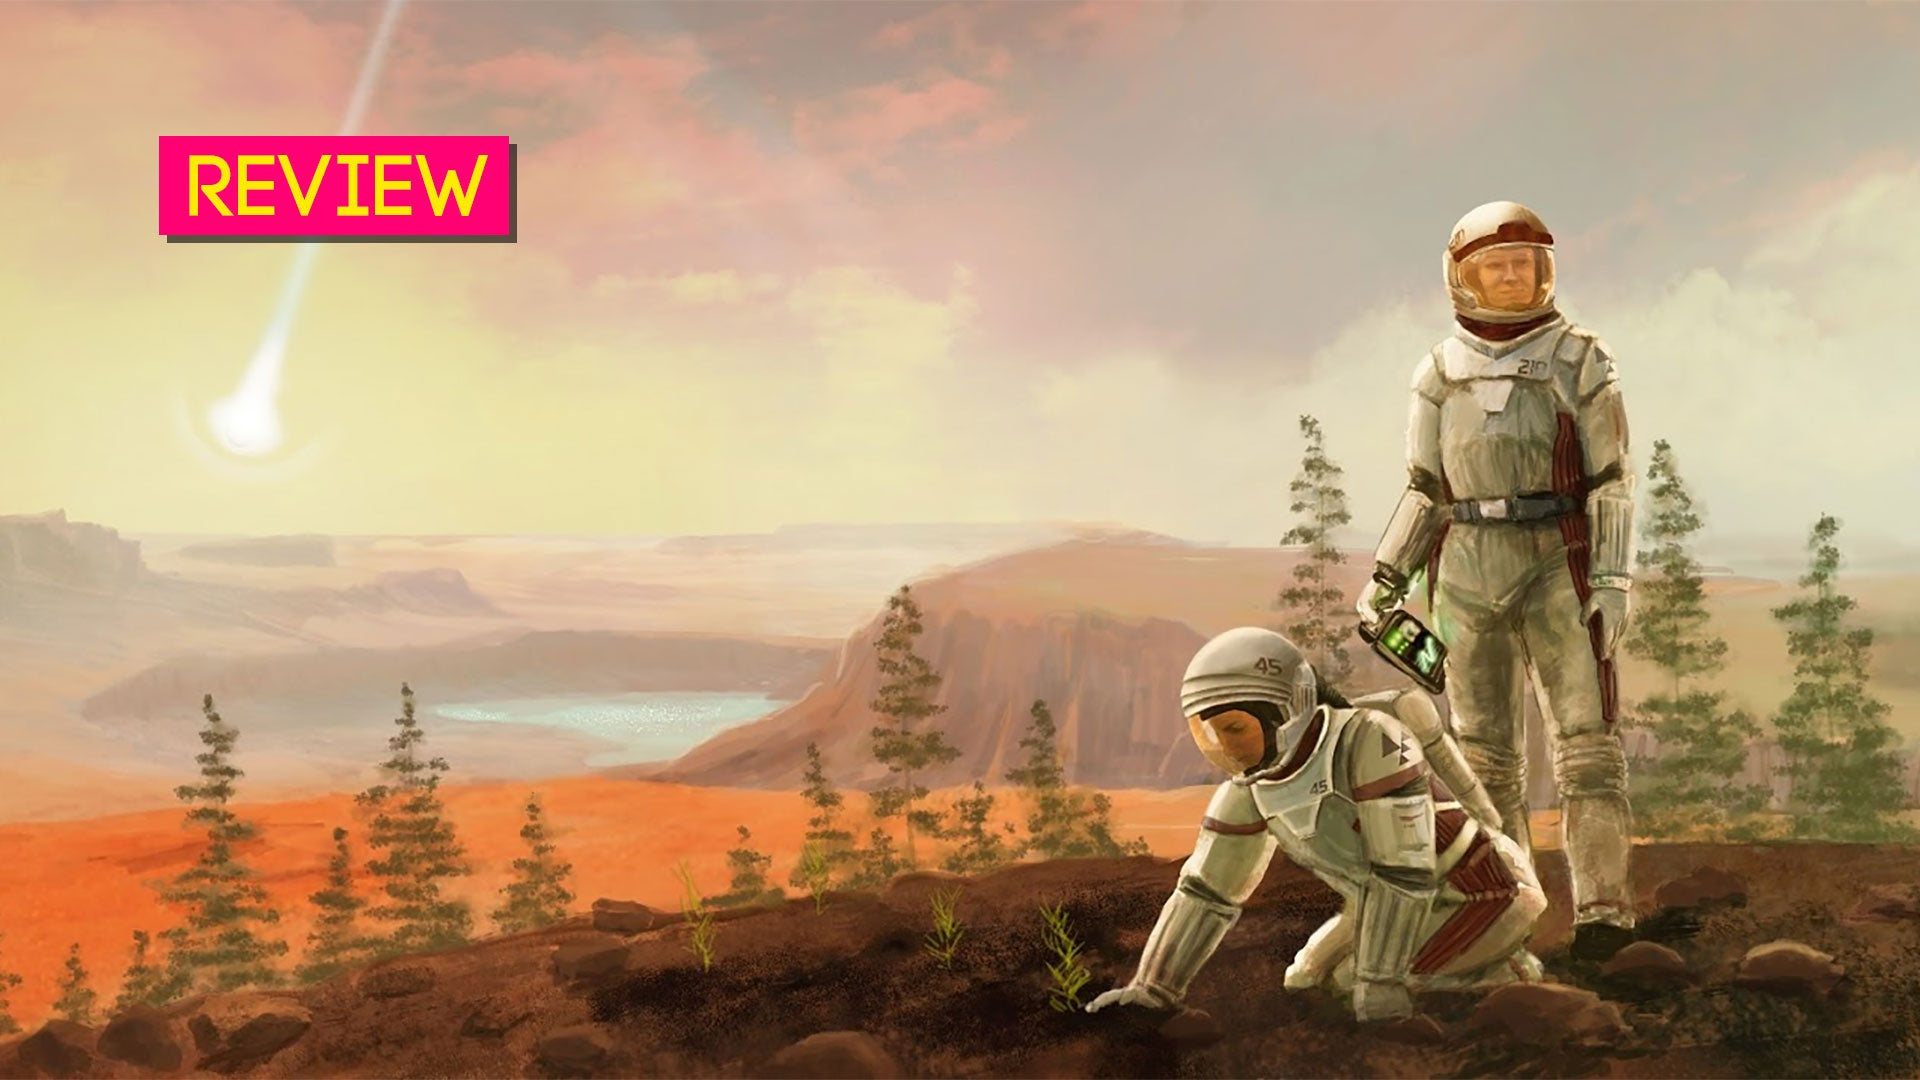 Terraforming Mars: The Kotaku Review